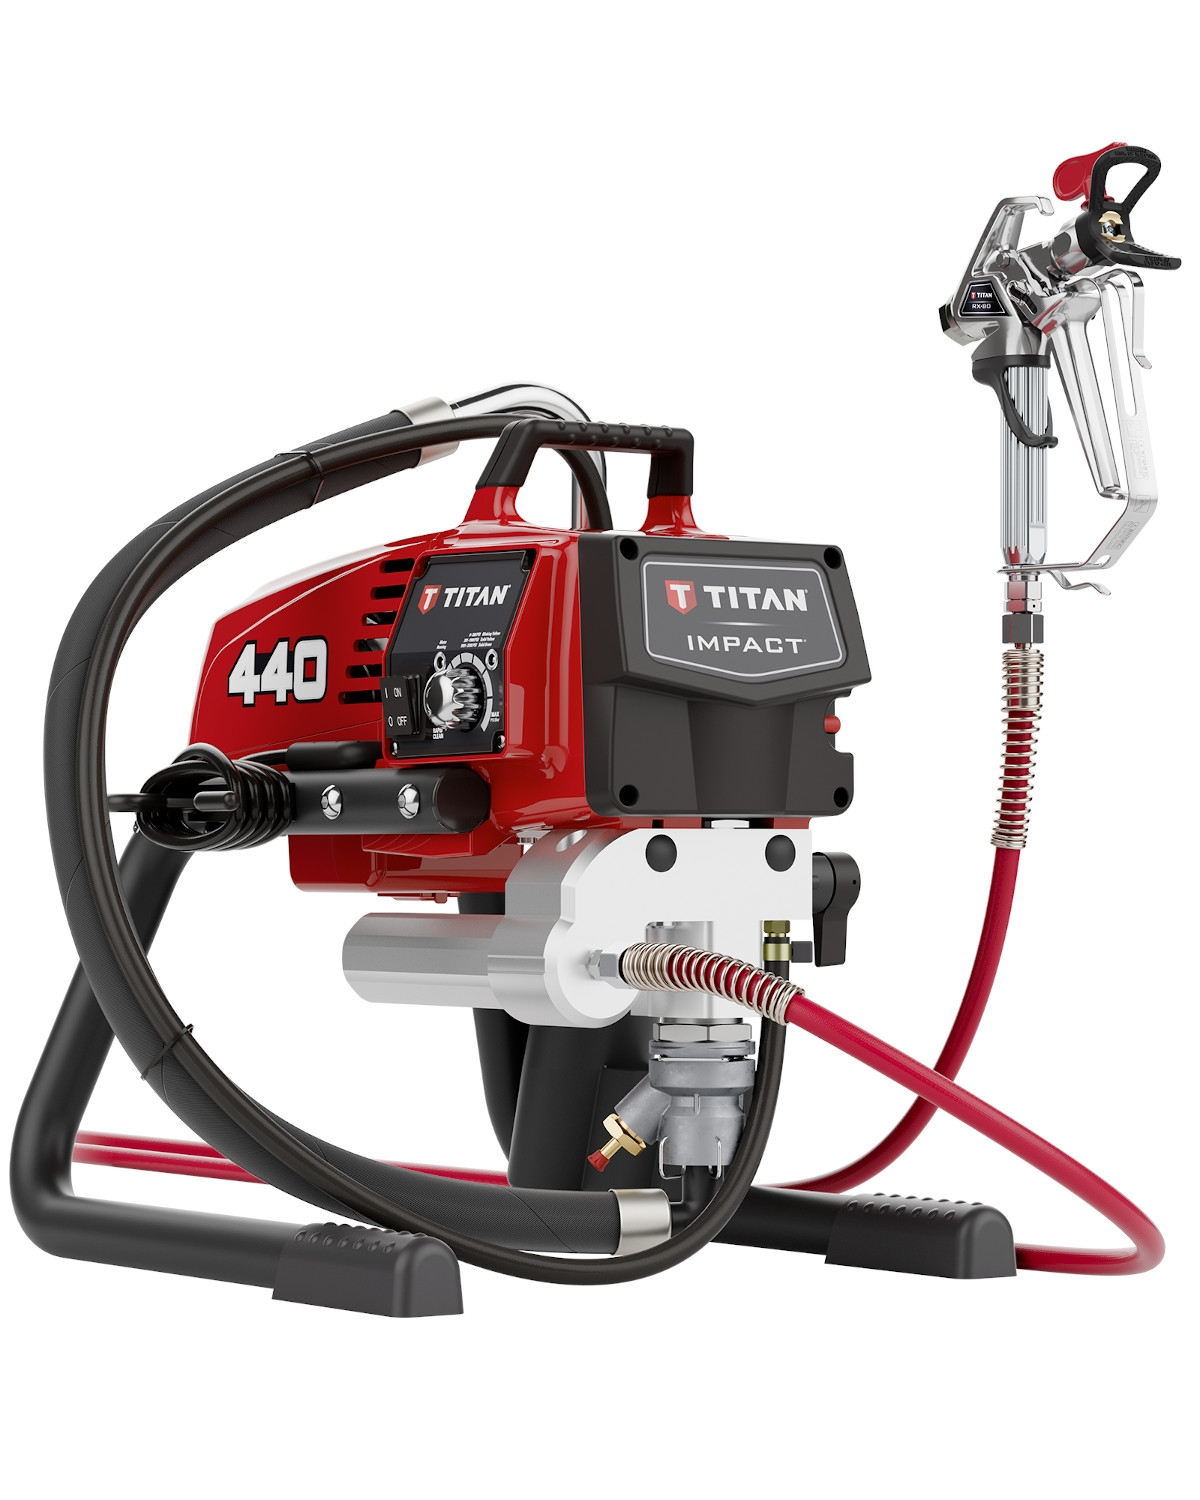 440 Impact Electric Airless Sprayer Sherwin Williams